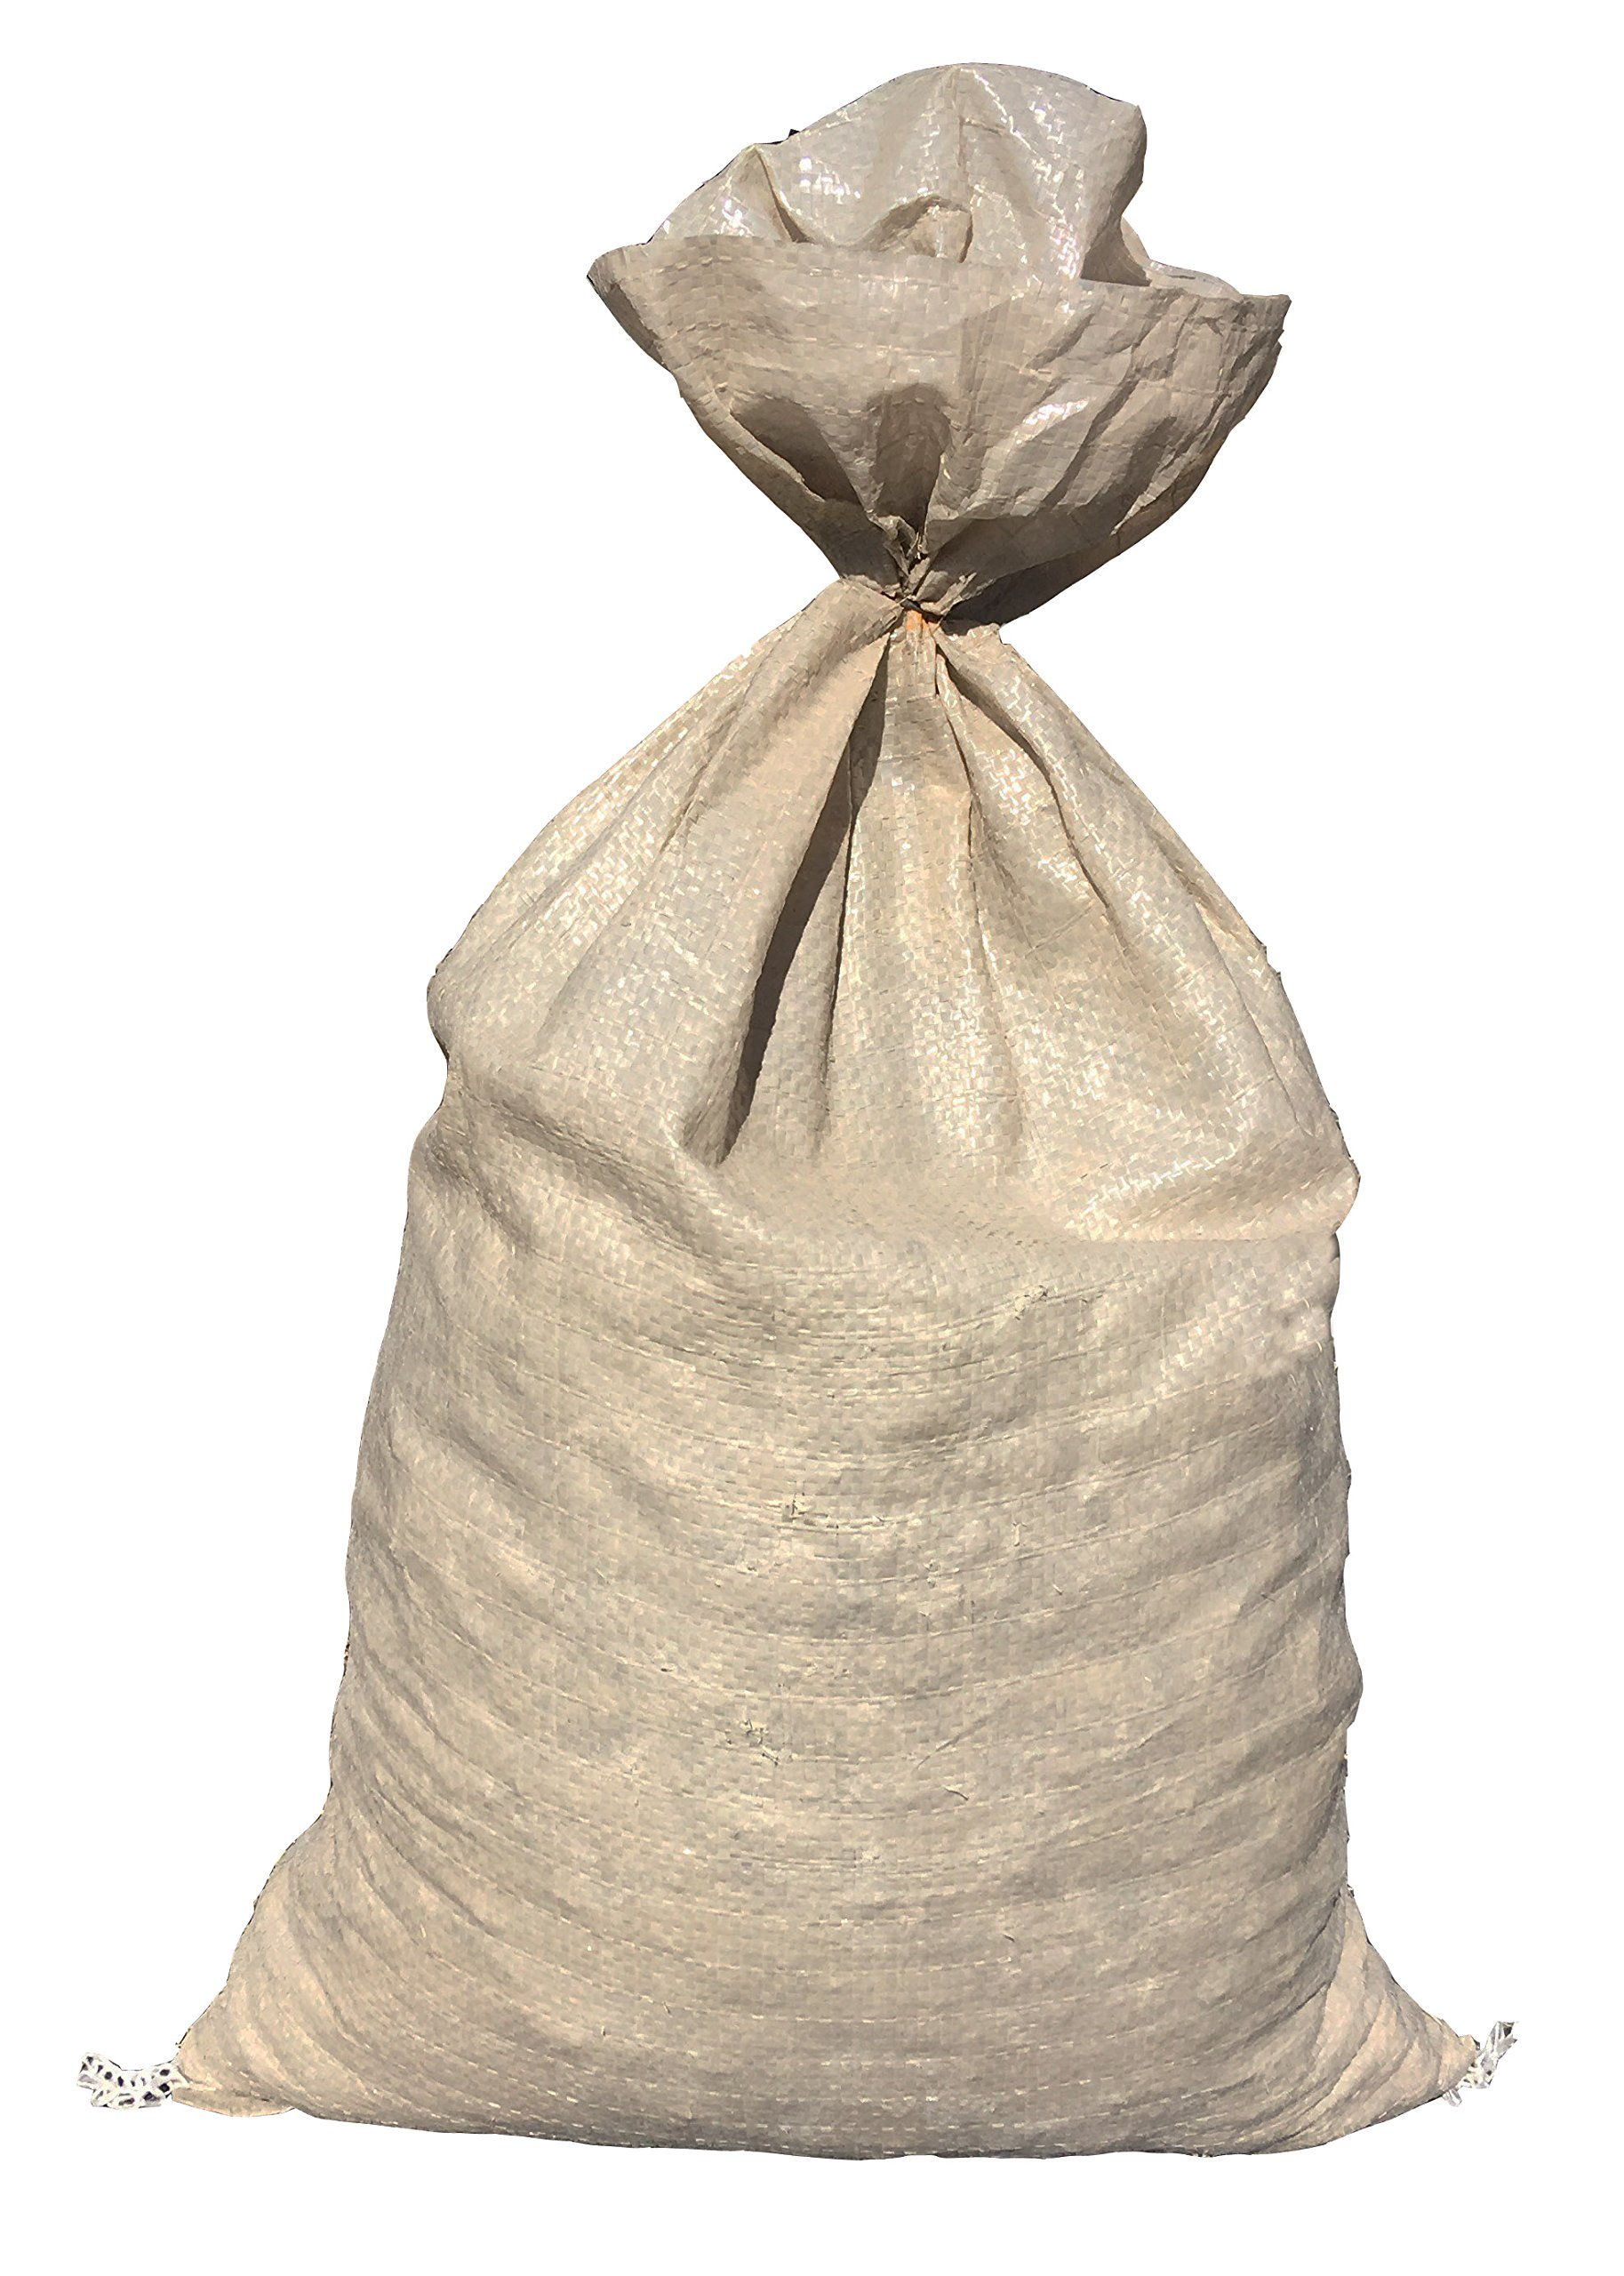 Filled Sandbags Size 14 X 26 Color Beige Sand Bag Flood Water Barrier Store Bags By Sandbaggy 1000 Amazon Com